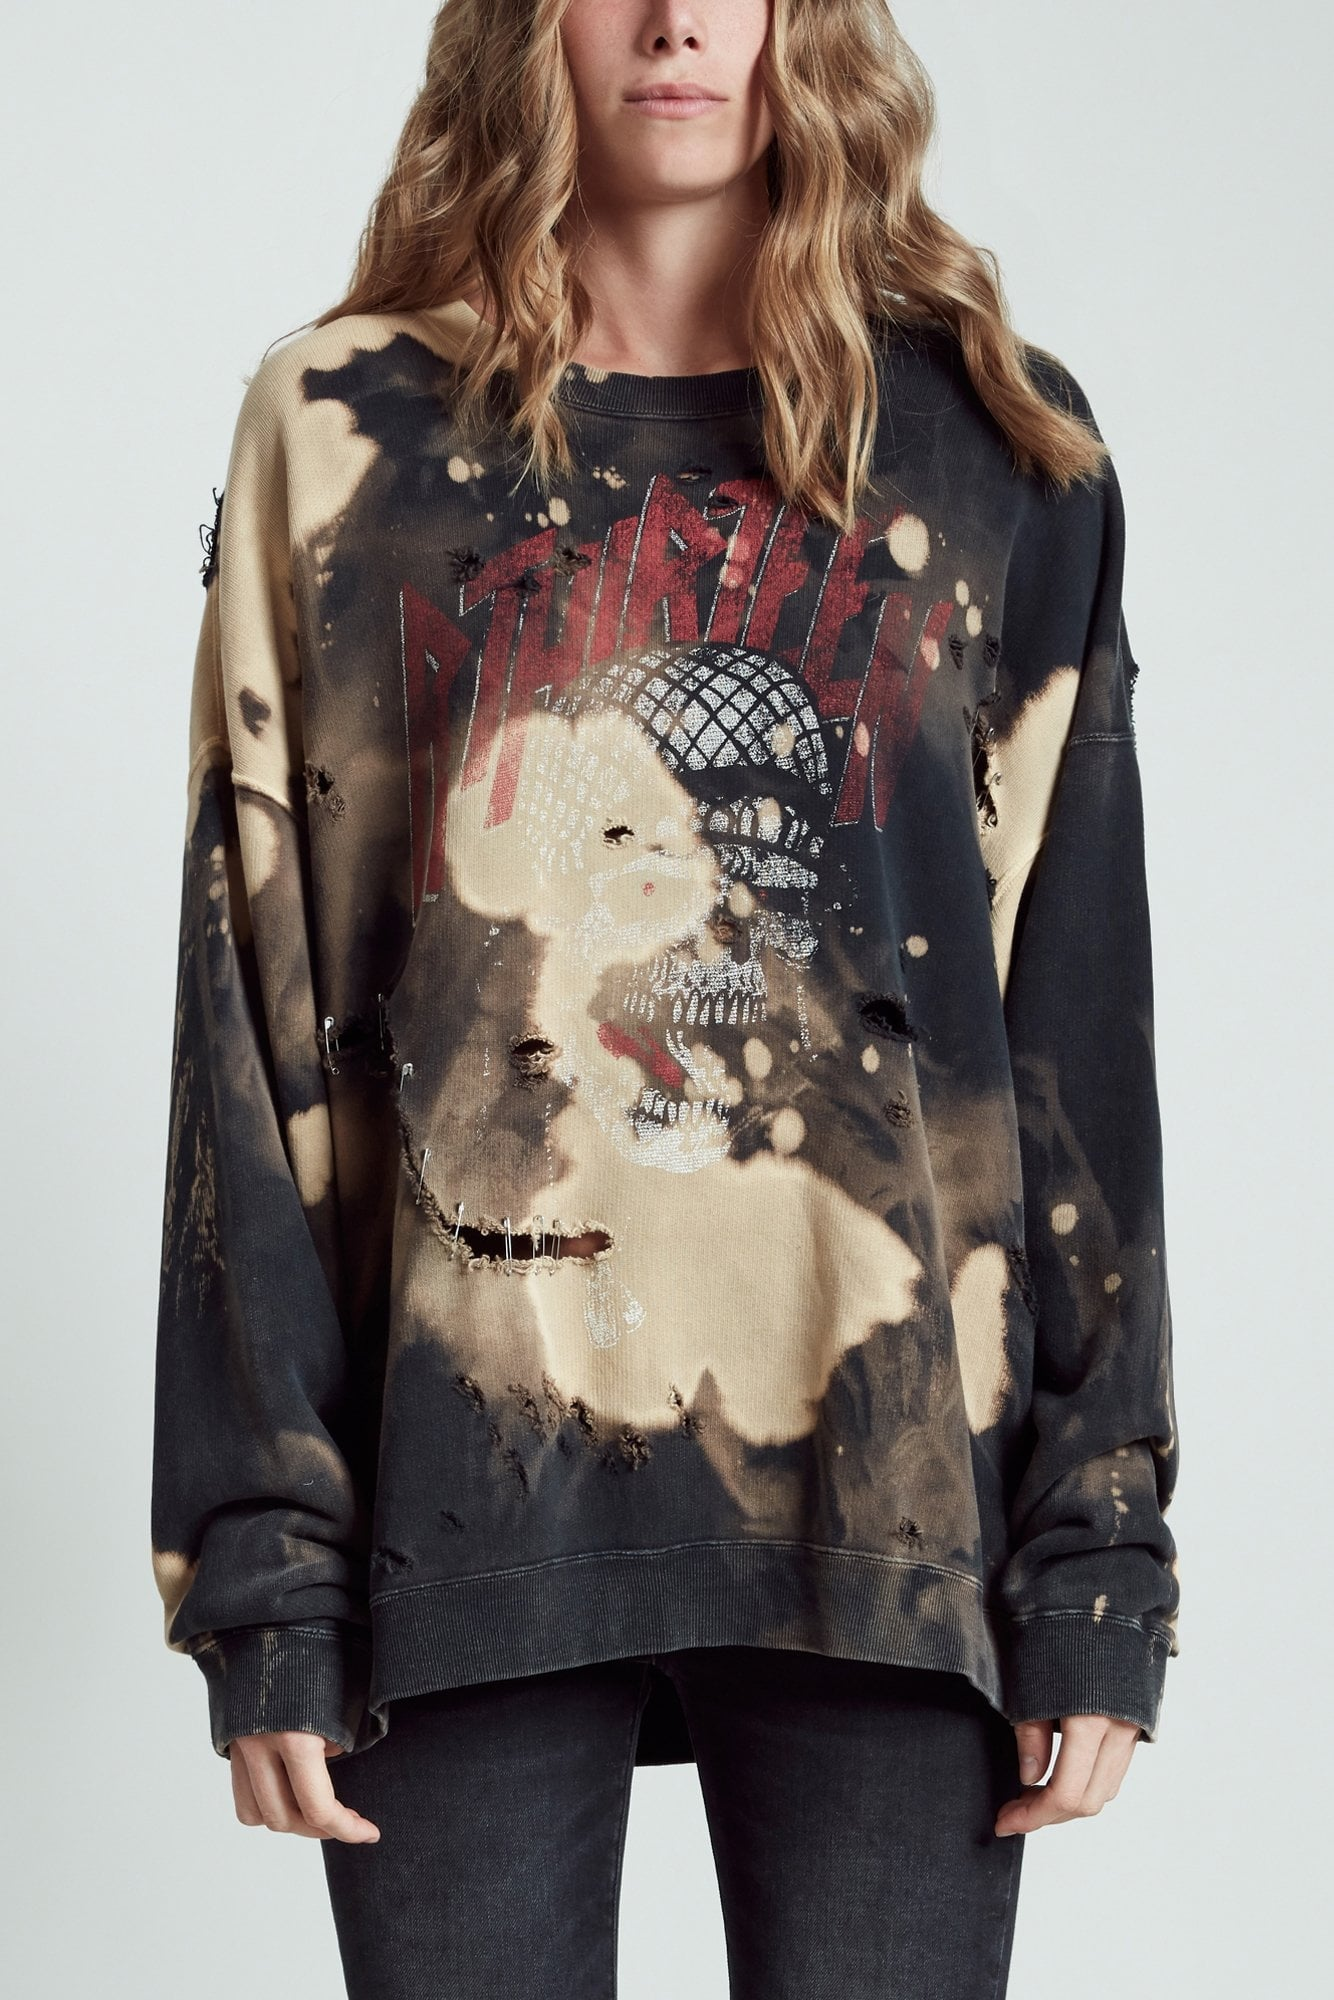 Battle Punk Oversized Crewneck- Bleached Black